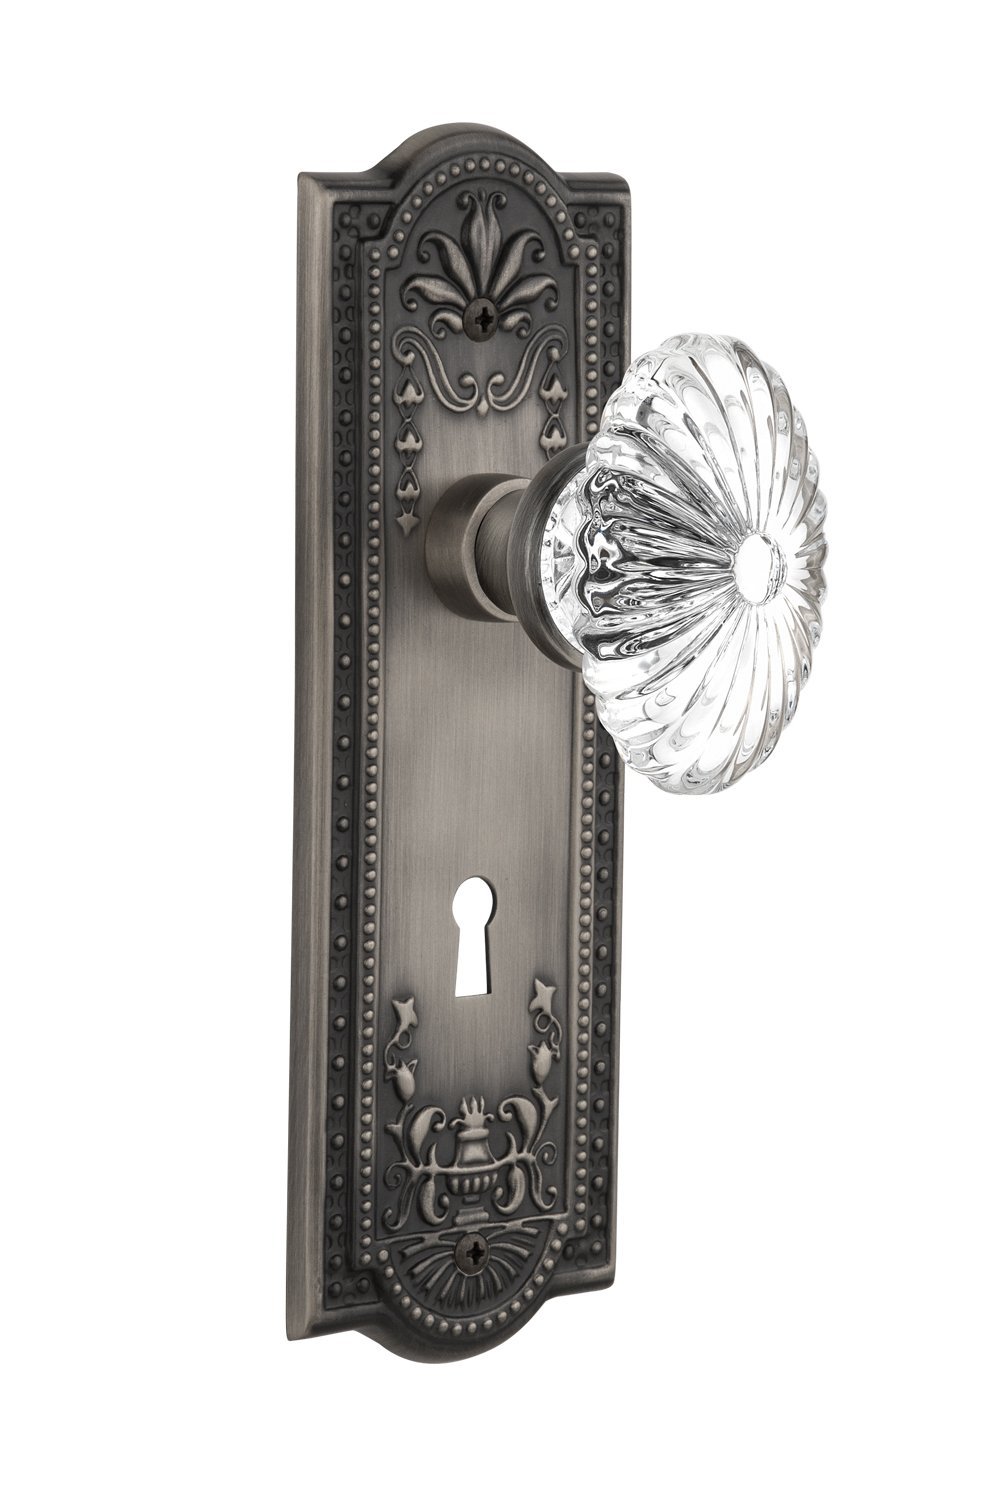 Antique Pewter Double Dummy Nostalgic Warehouse Meadows Plate with Keyhole Oval Fluted Crystal Glass Knob